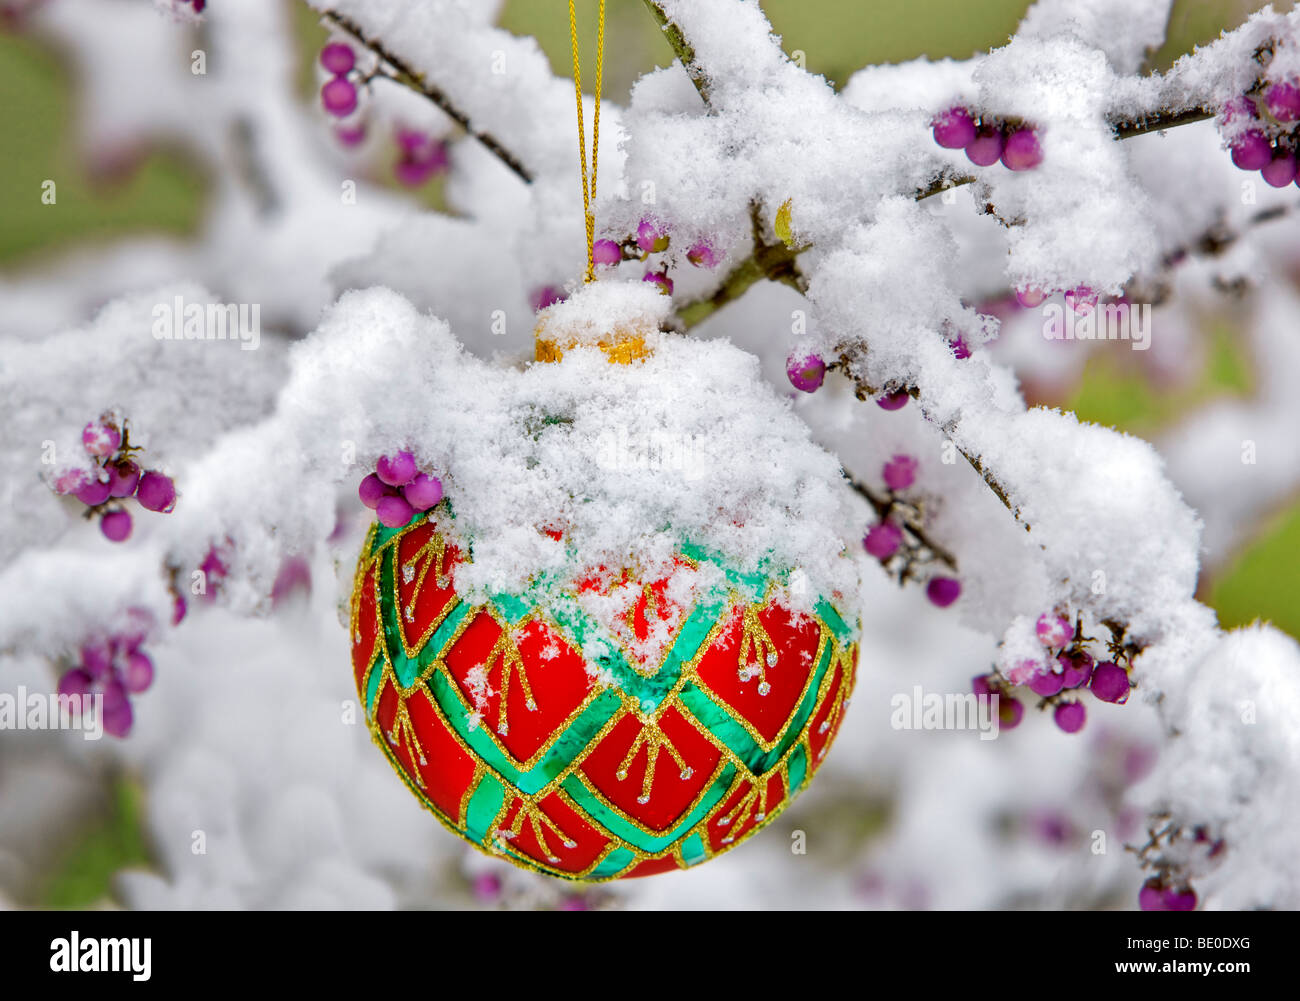 Christmas tree ornament in snow covered Beauty Bush with purple berries. - Stock Image